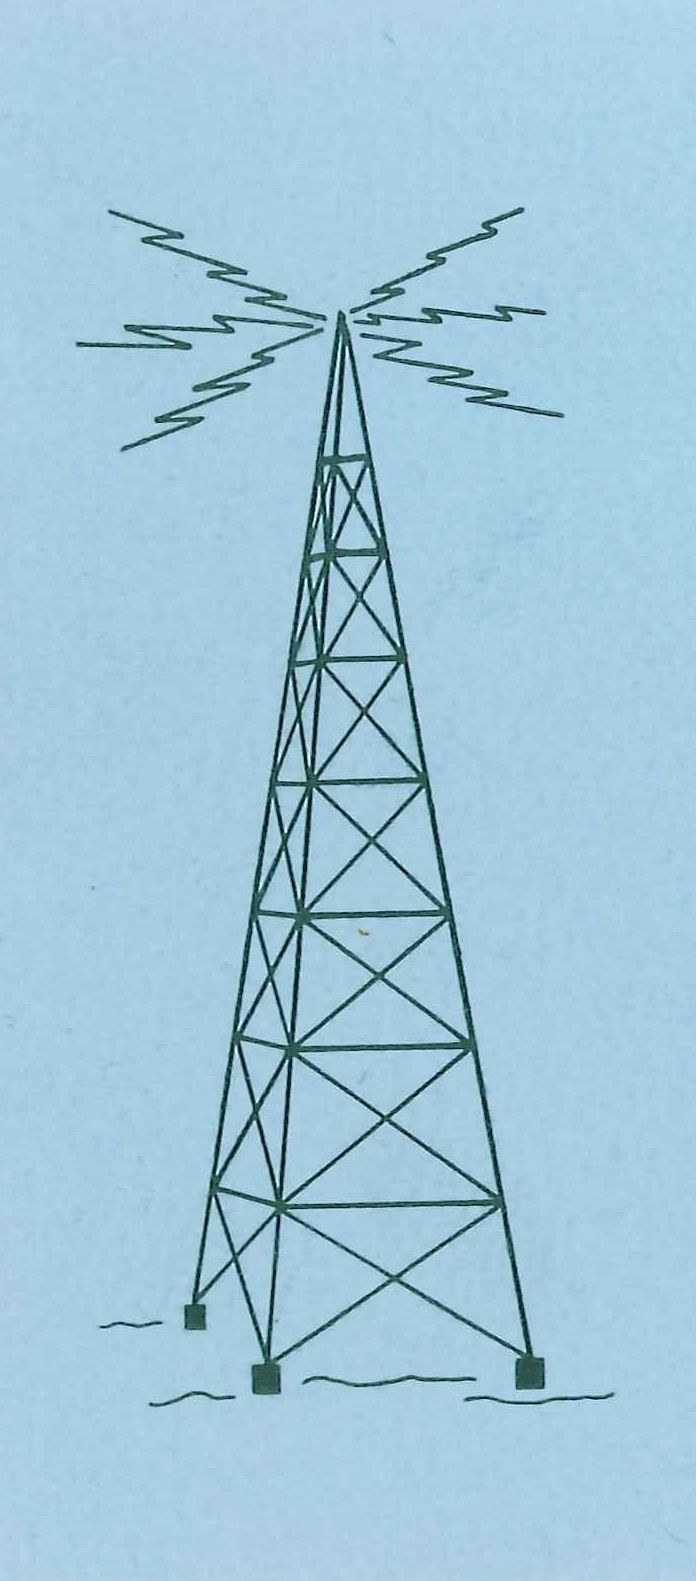 Vintage radio tower clipart clipart royalty free library Vintage Radio Tower logo | Vintage Print | Radio design ... clipart royalty free library